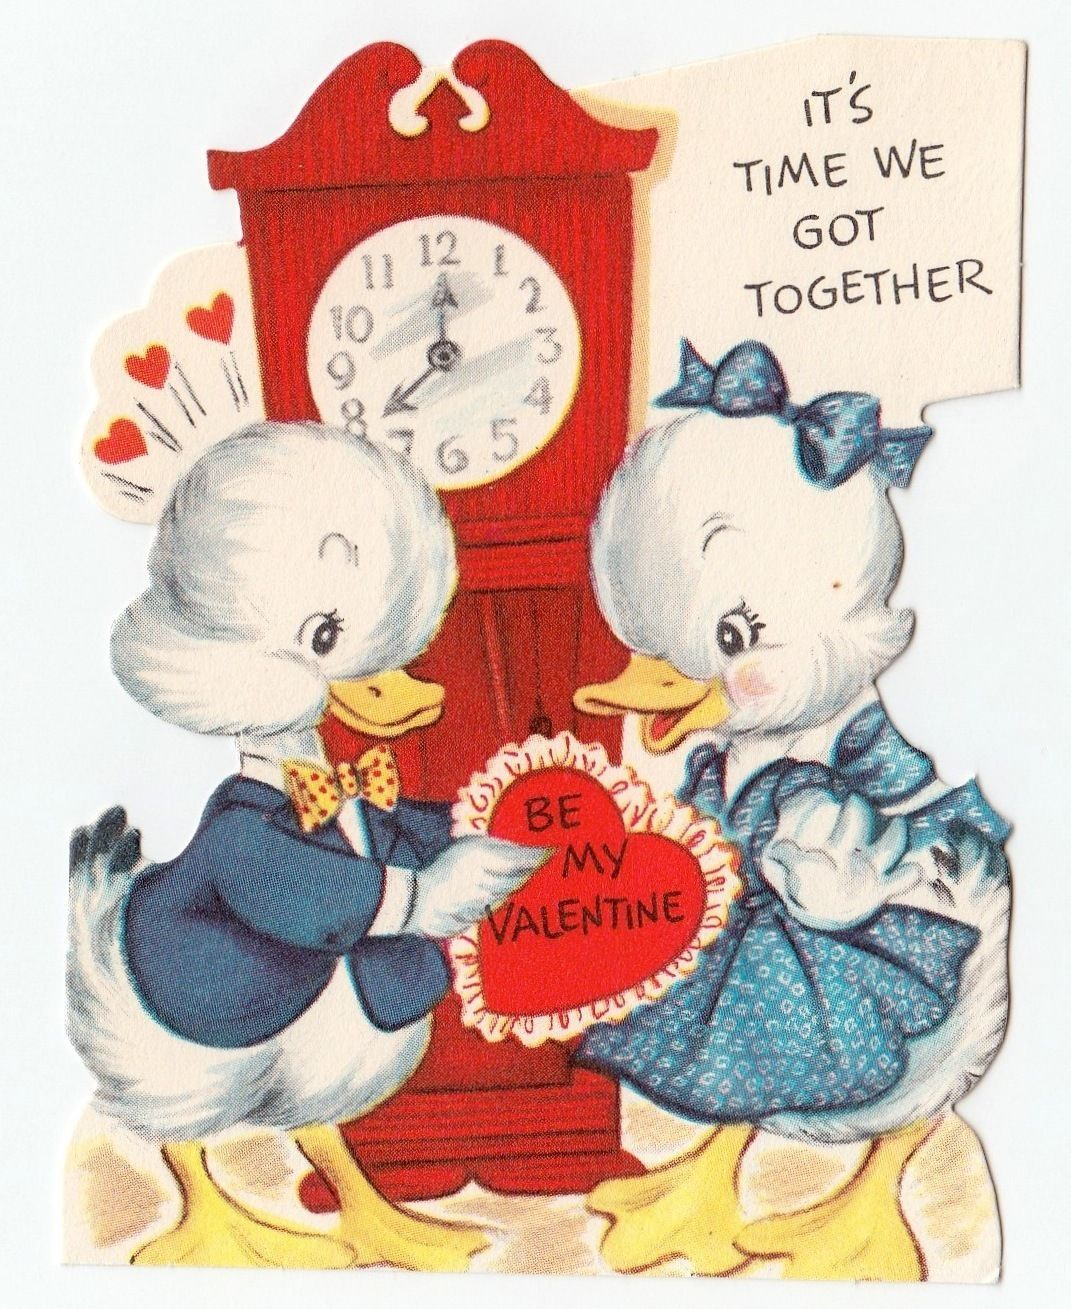 Vintage greeting card valentines day cute animal j591 ebay vintage greeting card valentines day cute animal j591 ebay kristyandbryce Image collections